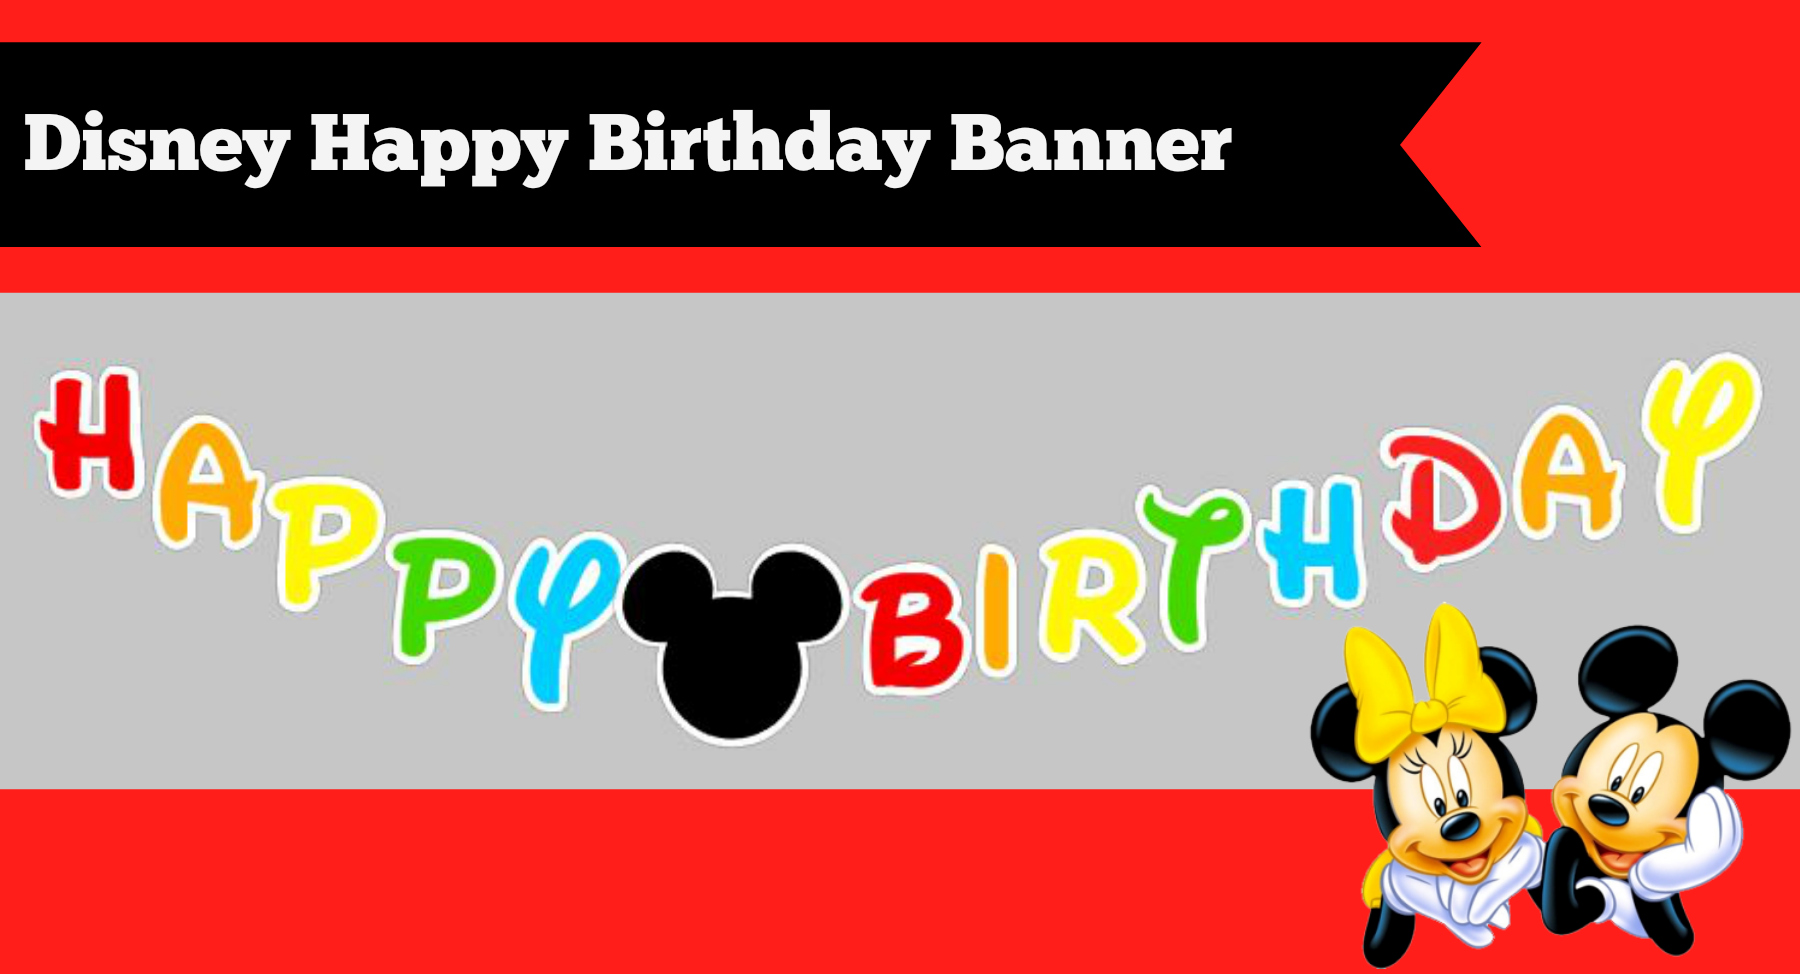 make a happy birthday banner Colesthecolossusco